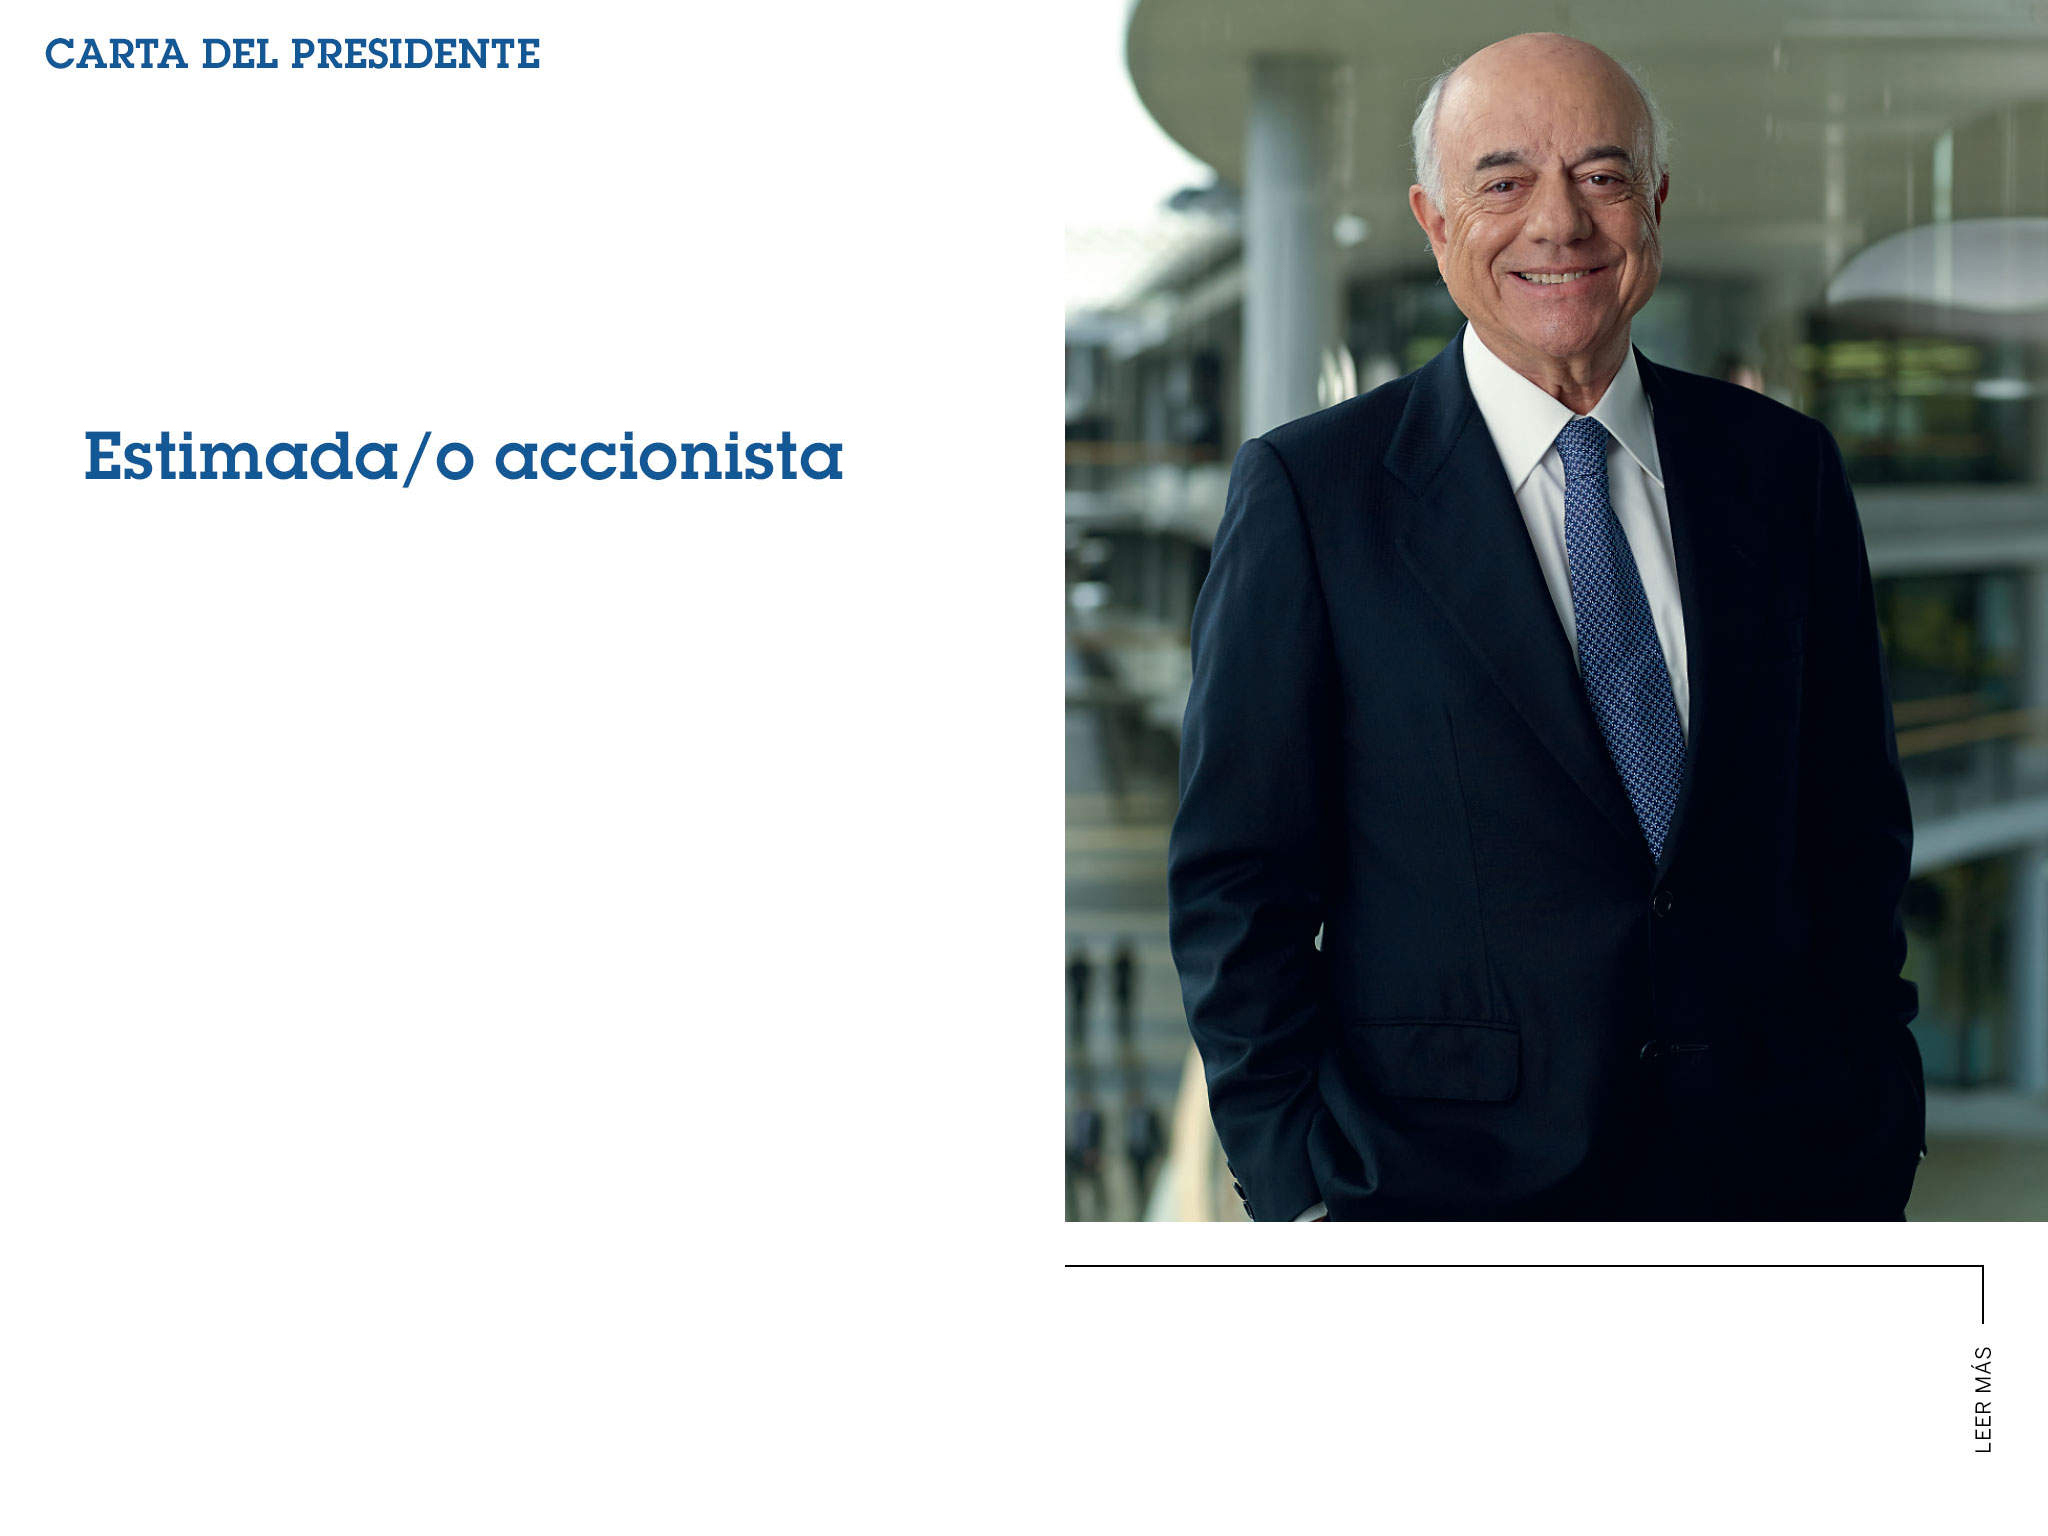 Shareholders Club - Accionistas e Inversiones en Bolsa, Analistas ...